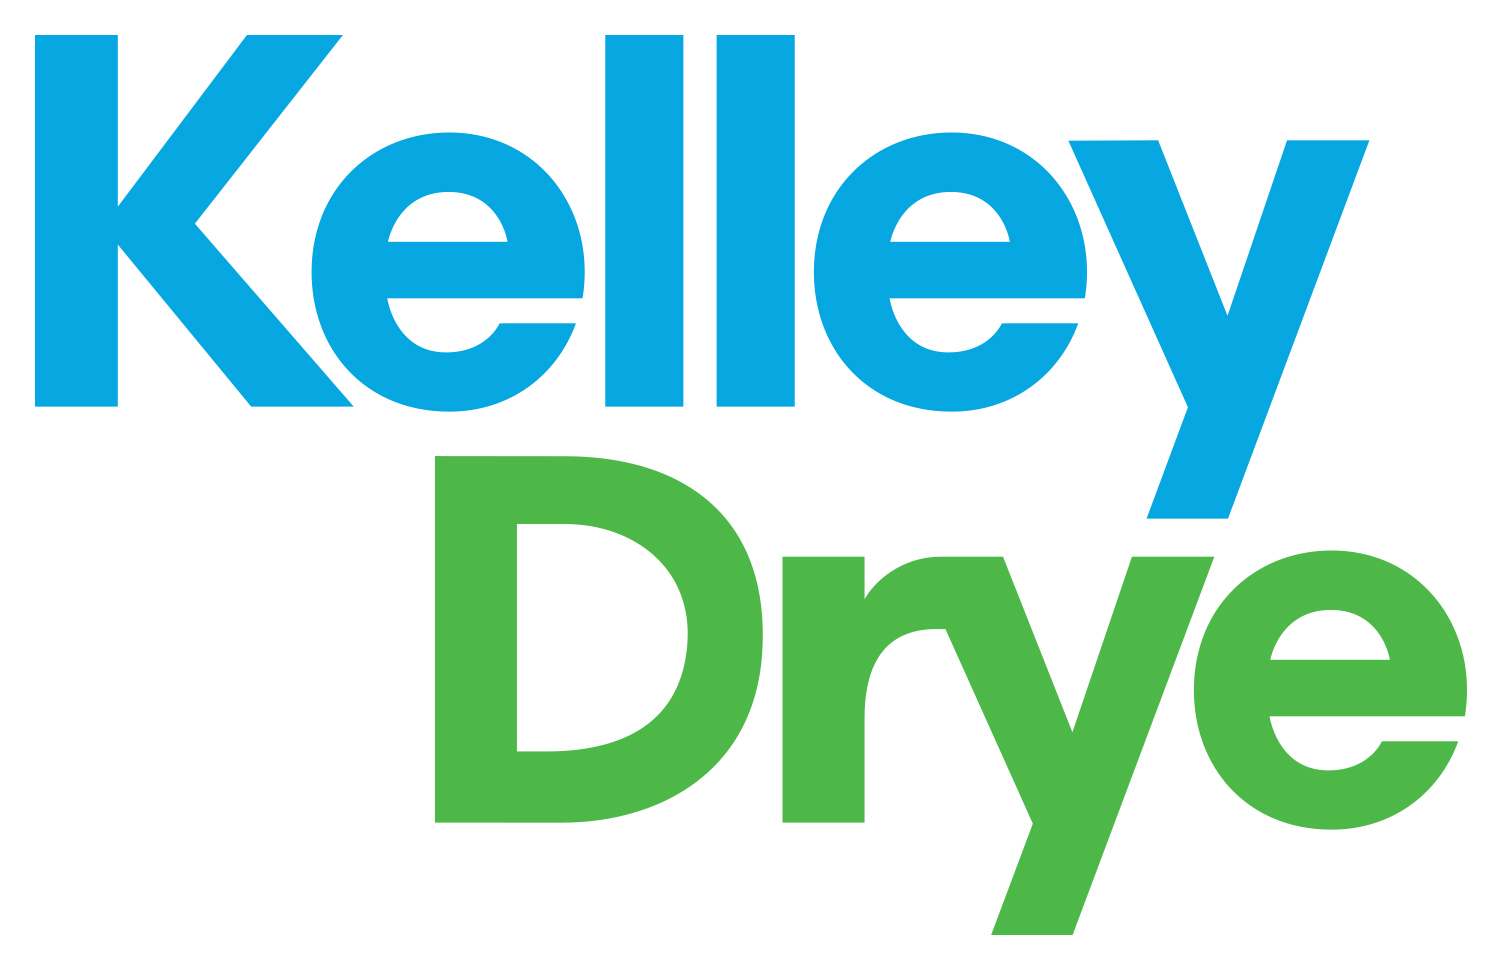 Kelley_Drye_logo